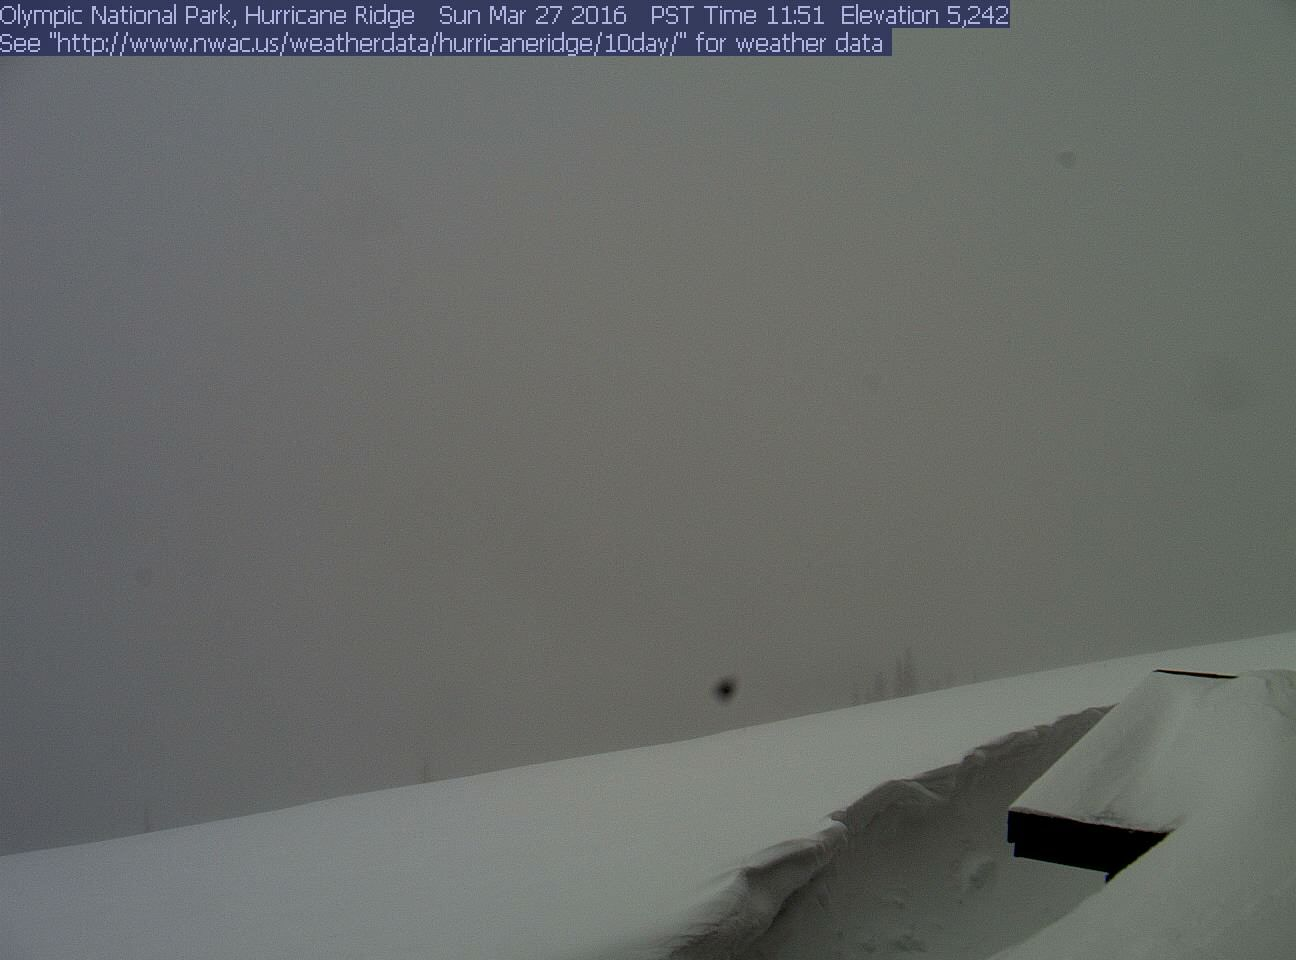 March 27, 2016 Olympic NP View from Hurricane Ridge